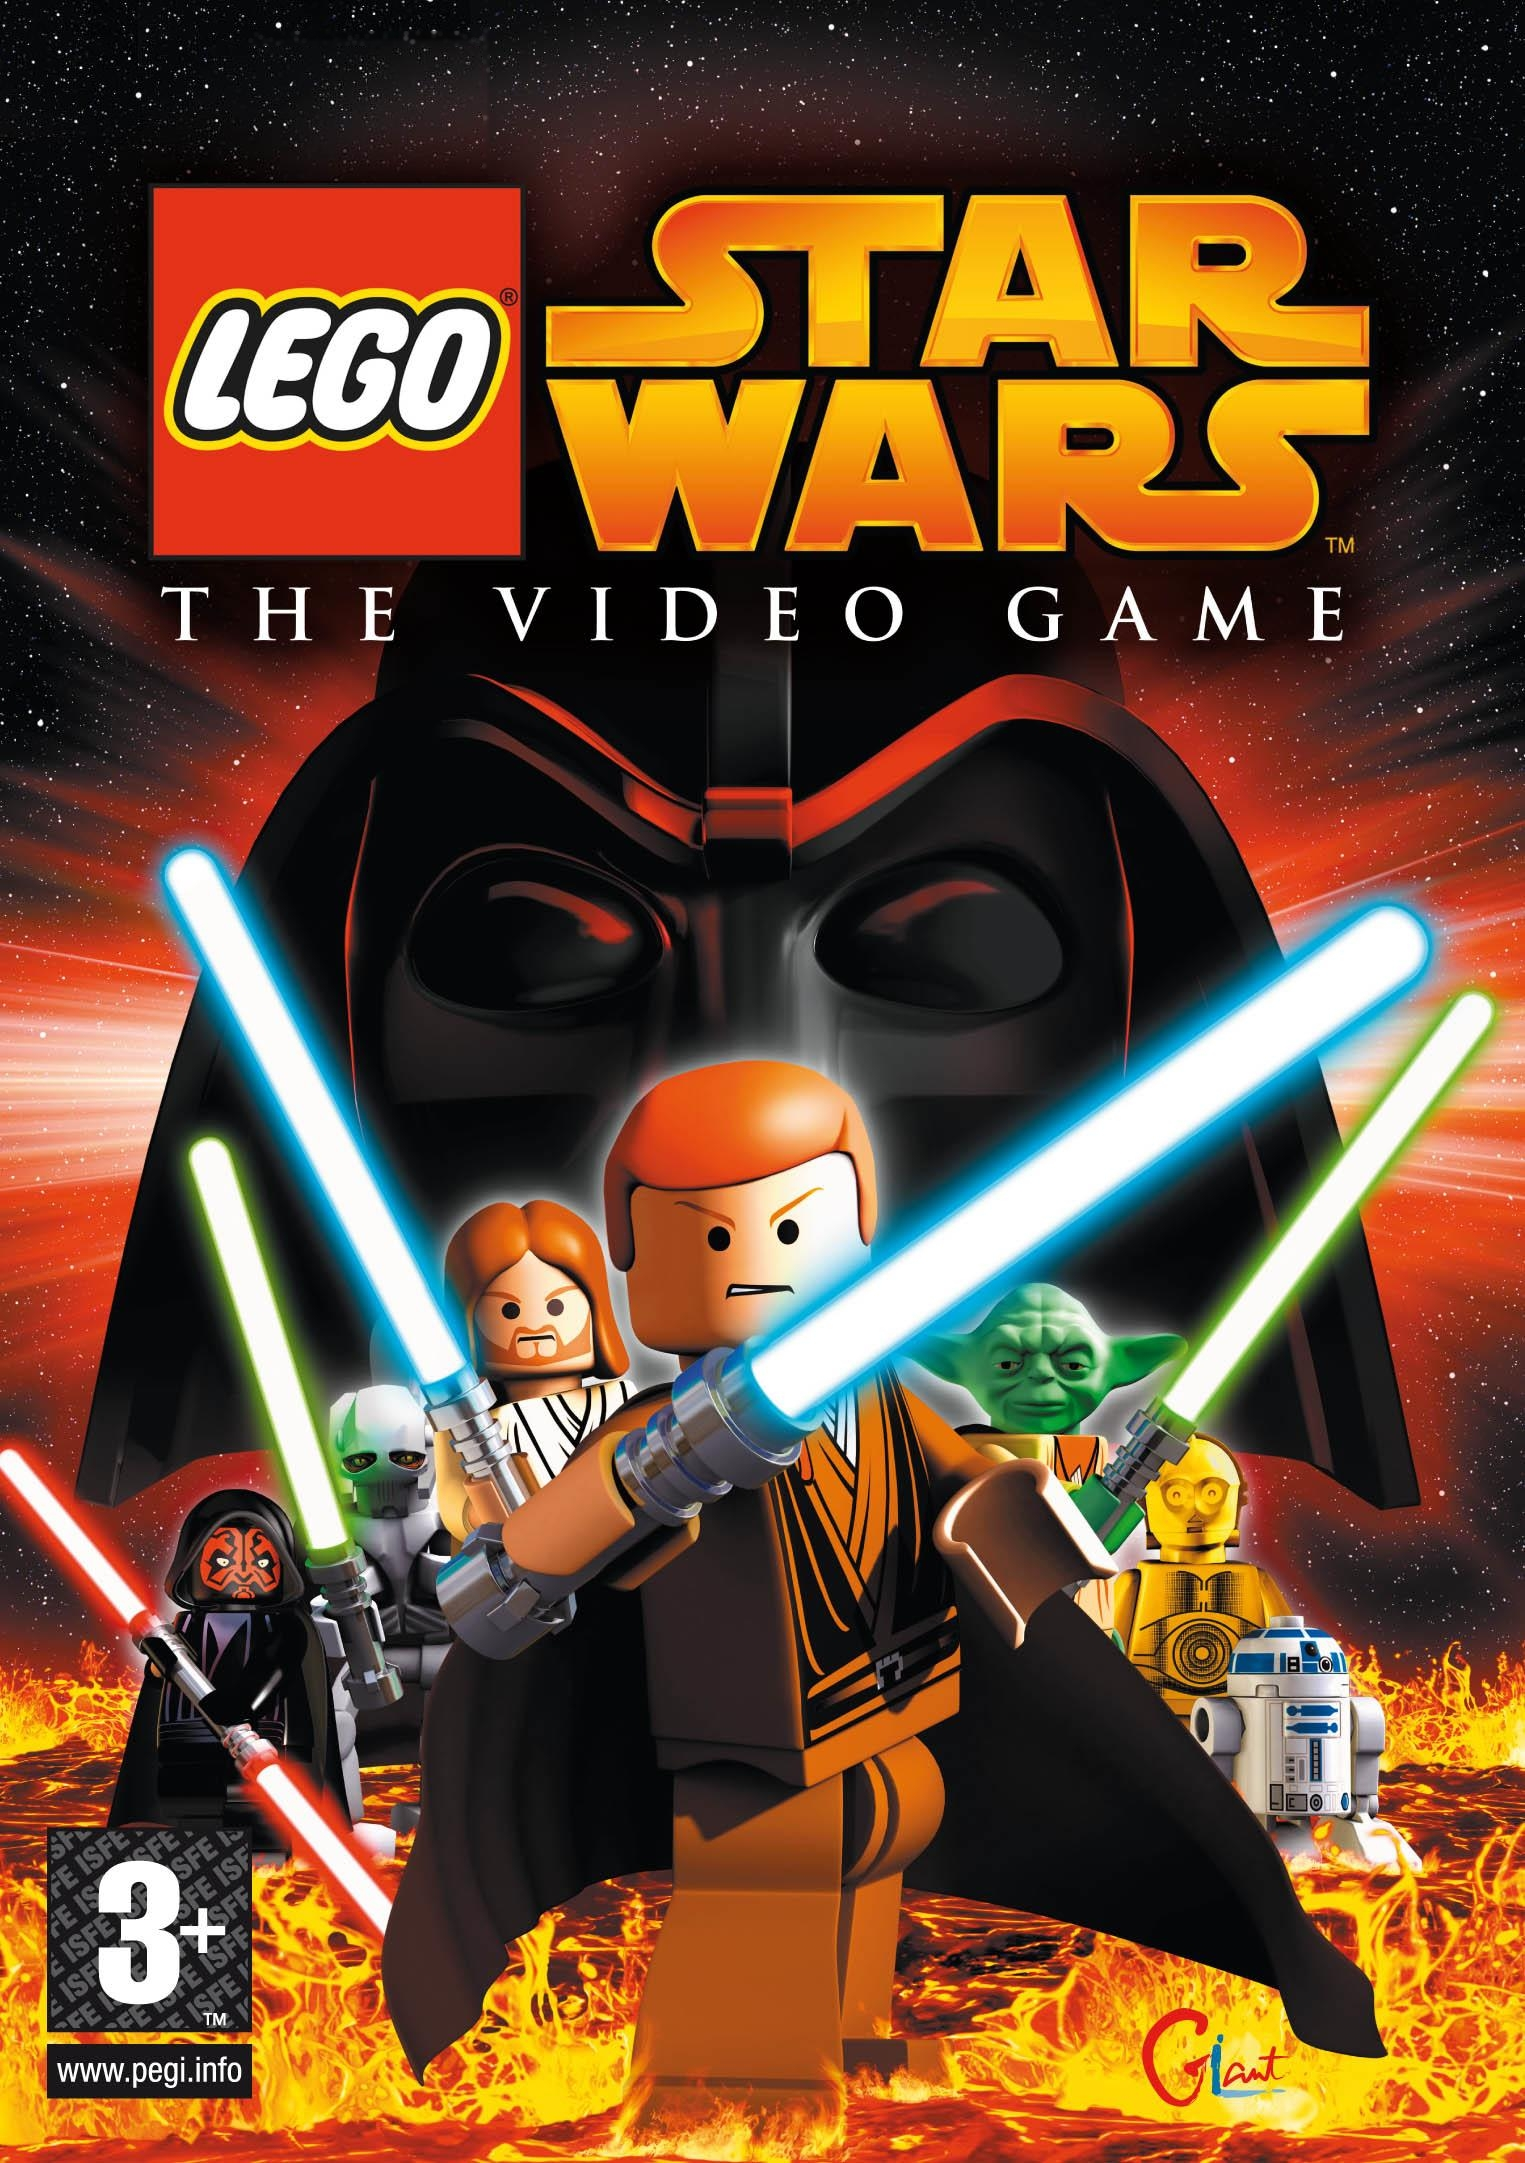 Lego star wars the video game wookieepedia the star wars wiki